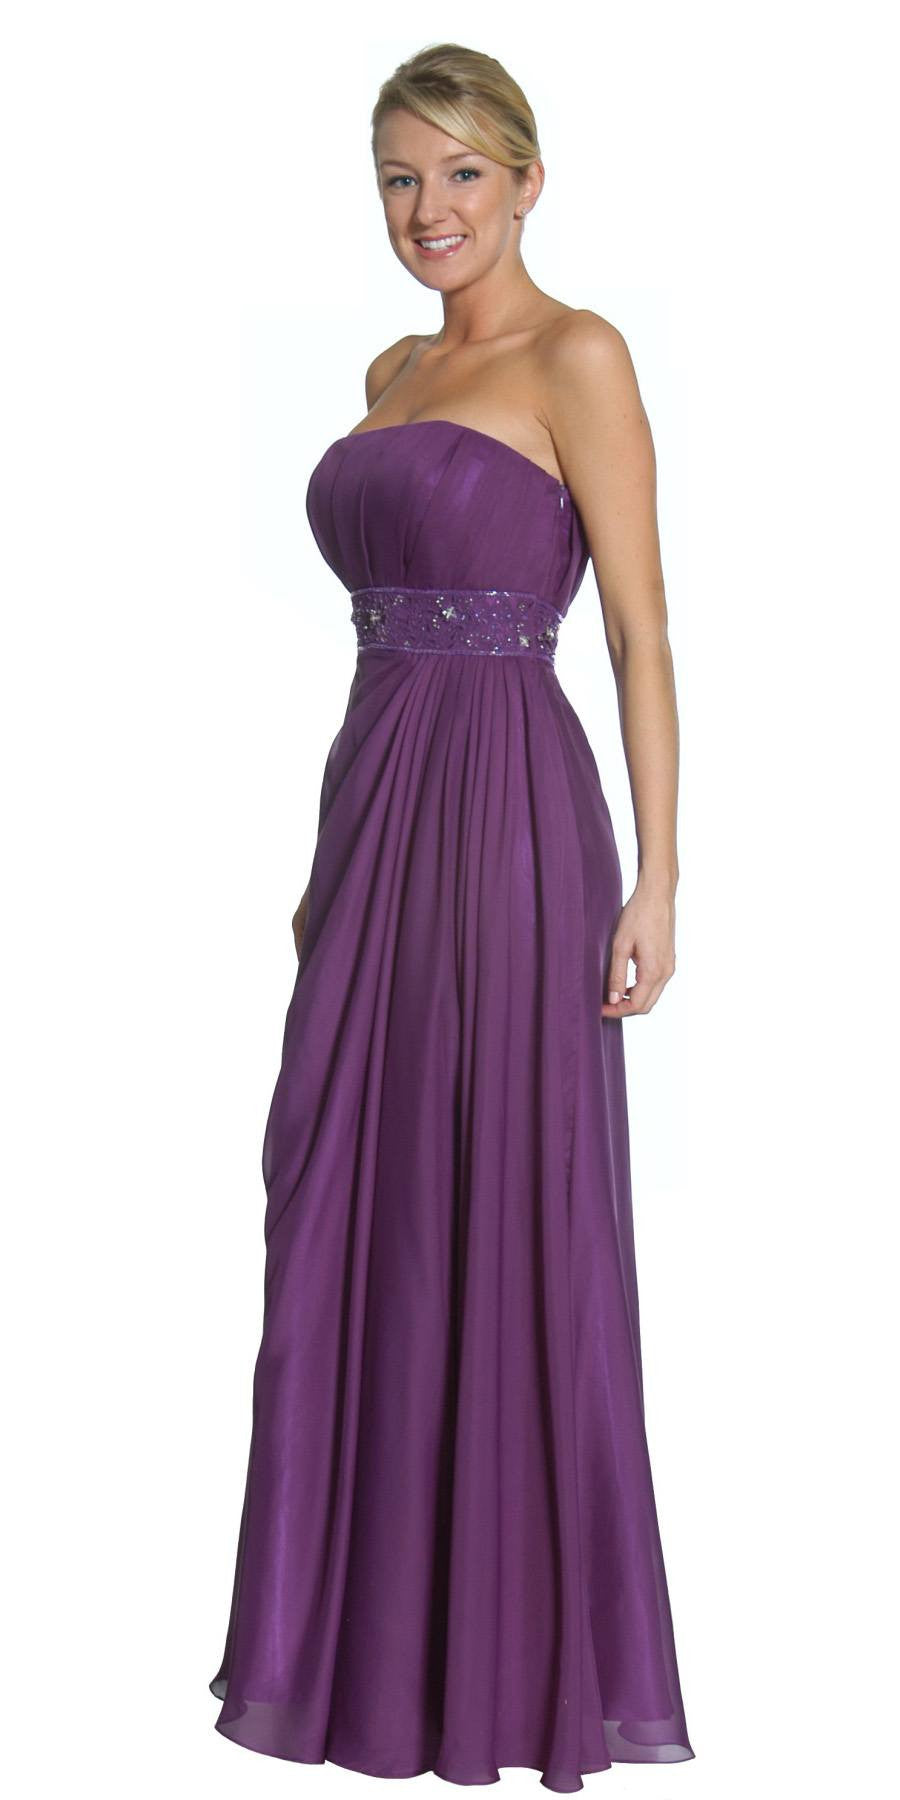 Purple Prom Dress Column Strapless Beaded Empire Draped Chiffon Skirt